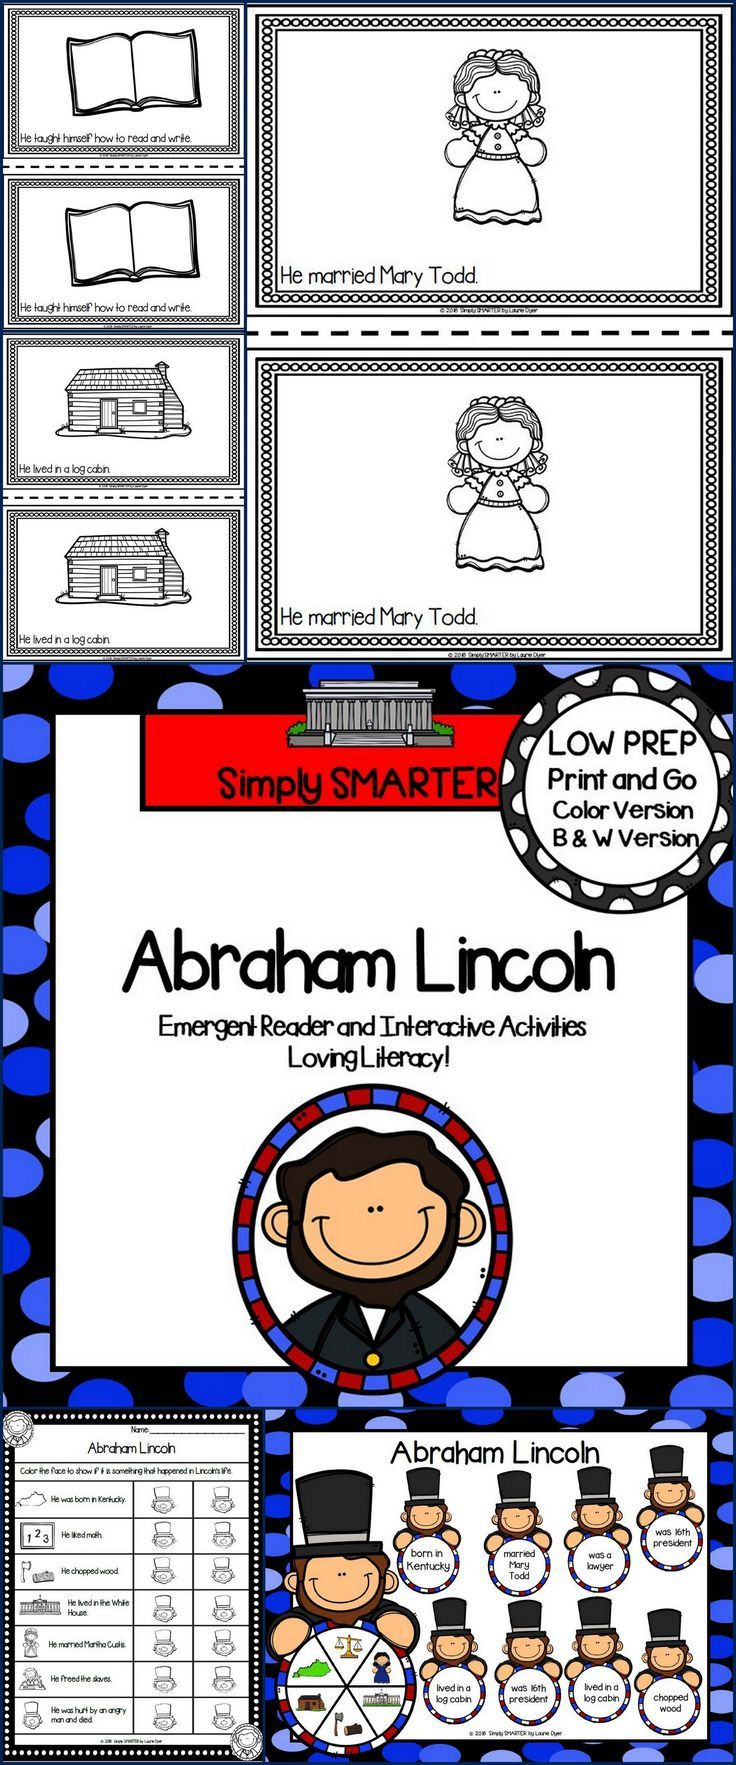 Are you looking for a LOW PREP reading activity for preschool, kindergarten, or first grade? Then use these Abraham Lincoln activities for guided reading, shared reading, independent reading, social studies, or homework. Children can choose a colored version or black and white reader. The reader contains a simple sentence on each page and informs children about Abraham Lincoln. Children will reinforce what they read by completing the response page and by playing the board game.